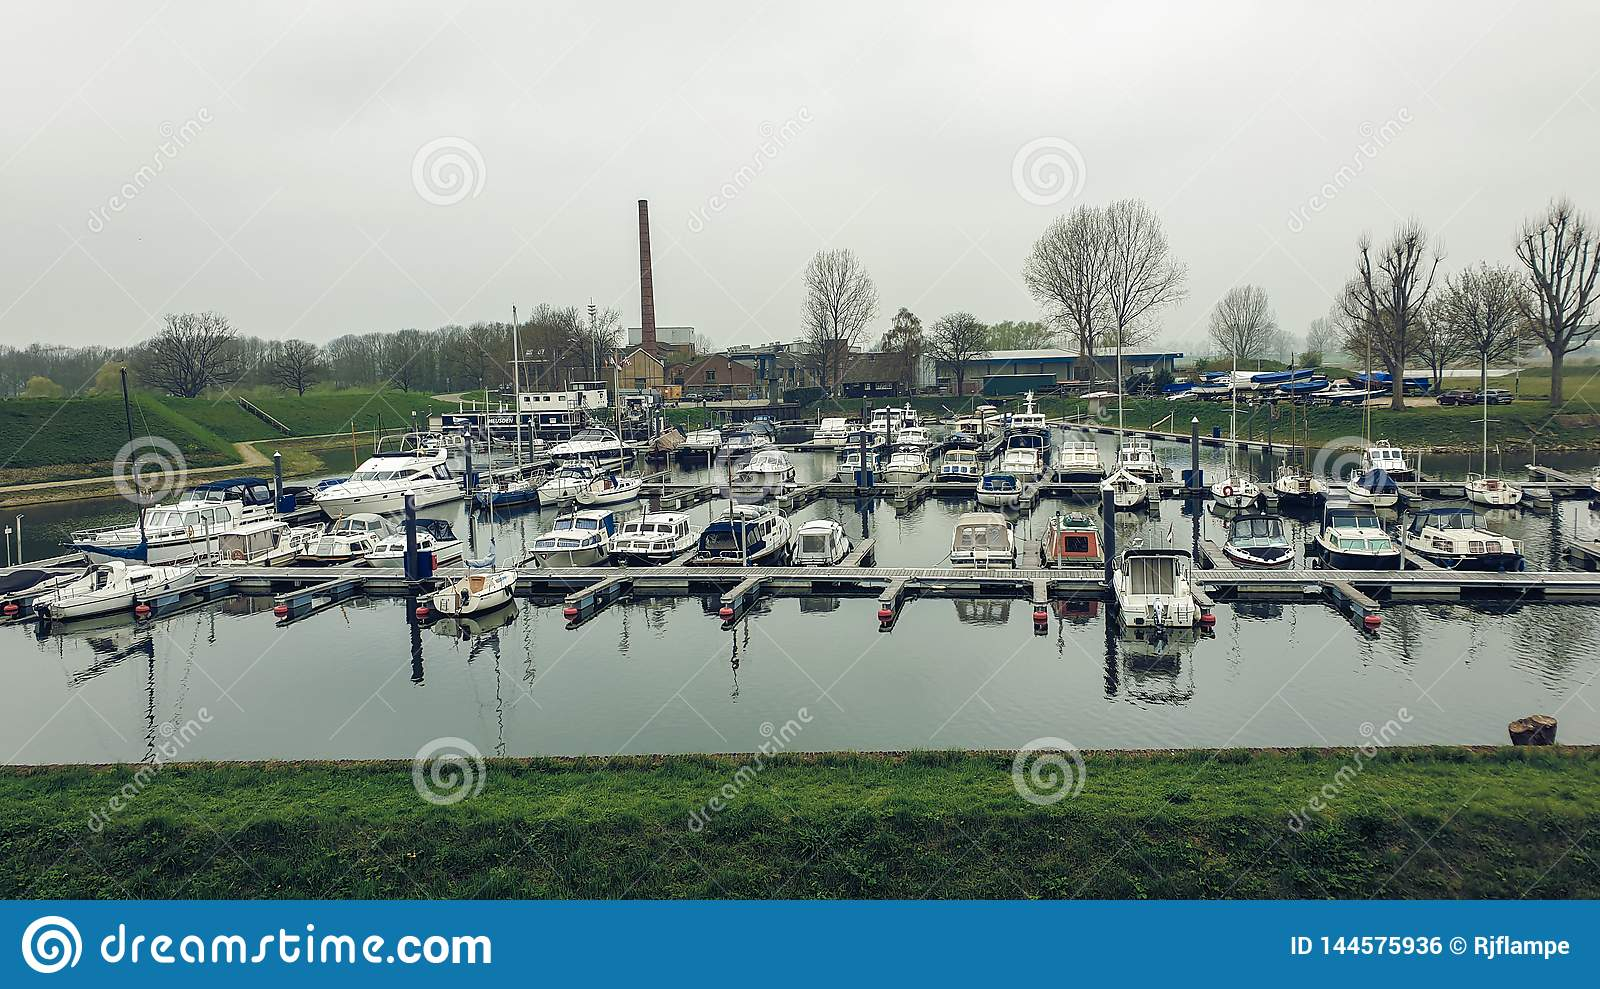 Heusden, Netherlands - 6 April 2019: Boats docked in the harbor, waiting for a nice day